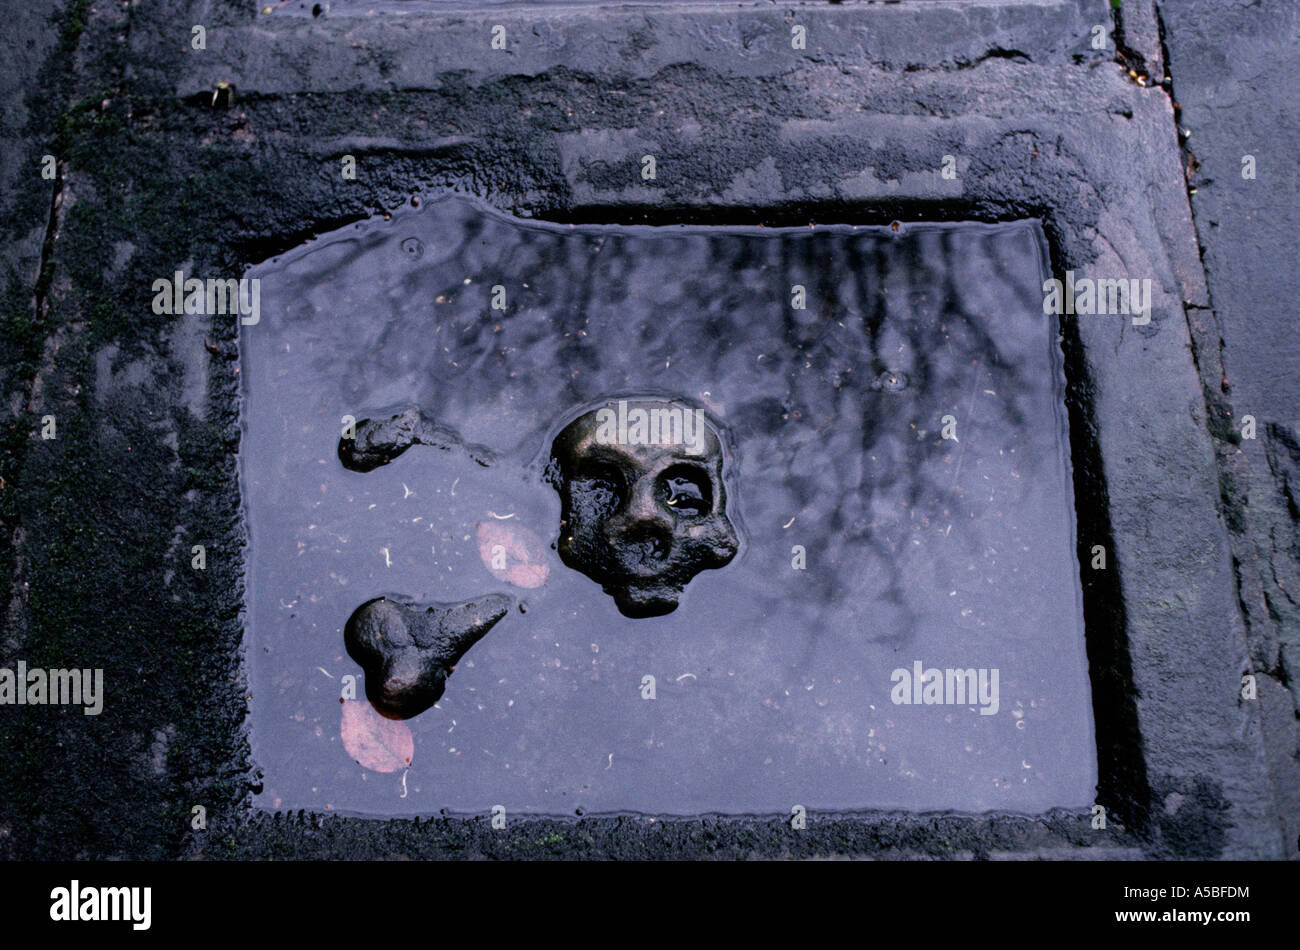 TOTENKOPF-FRIEDHOF IN NEWCASTLE, ENGLAND Stockbild